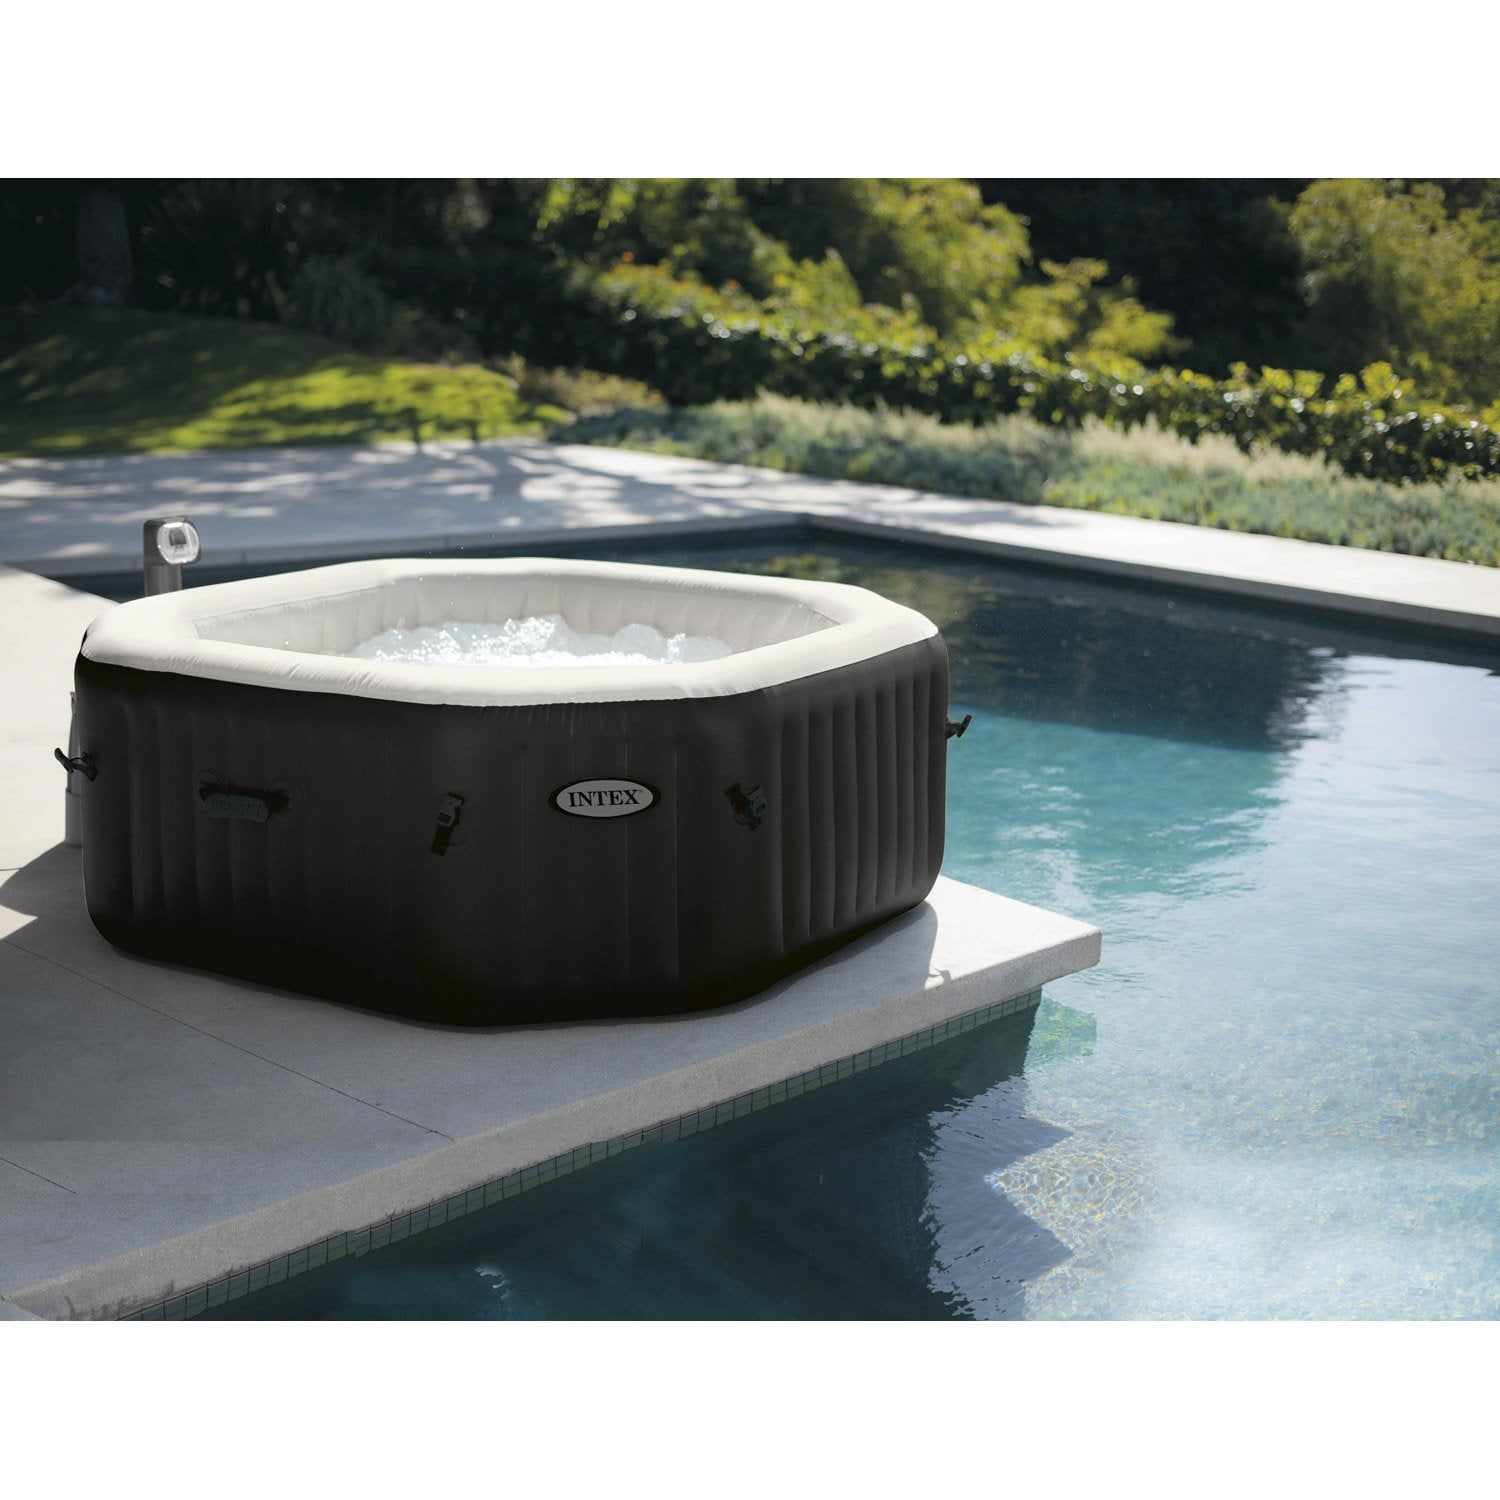 Spa Leroy Merlin Intex 6 Places spa gonflable intex pure spa octogonale, 6 places assises